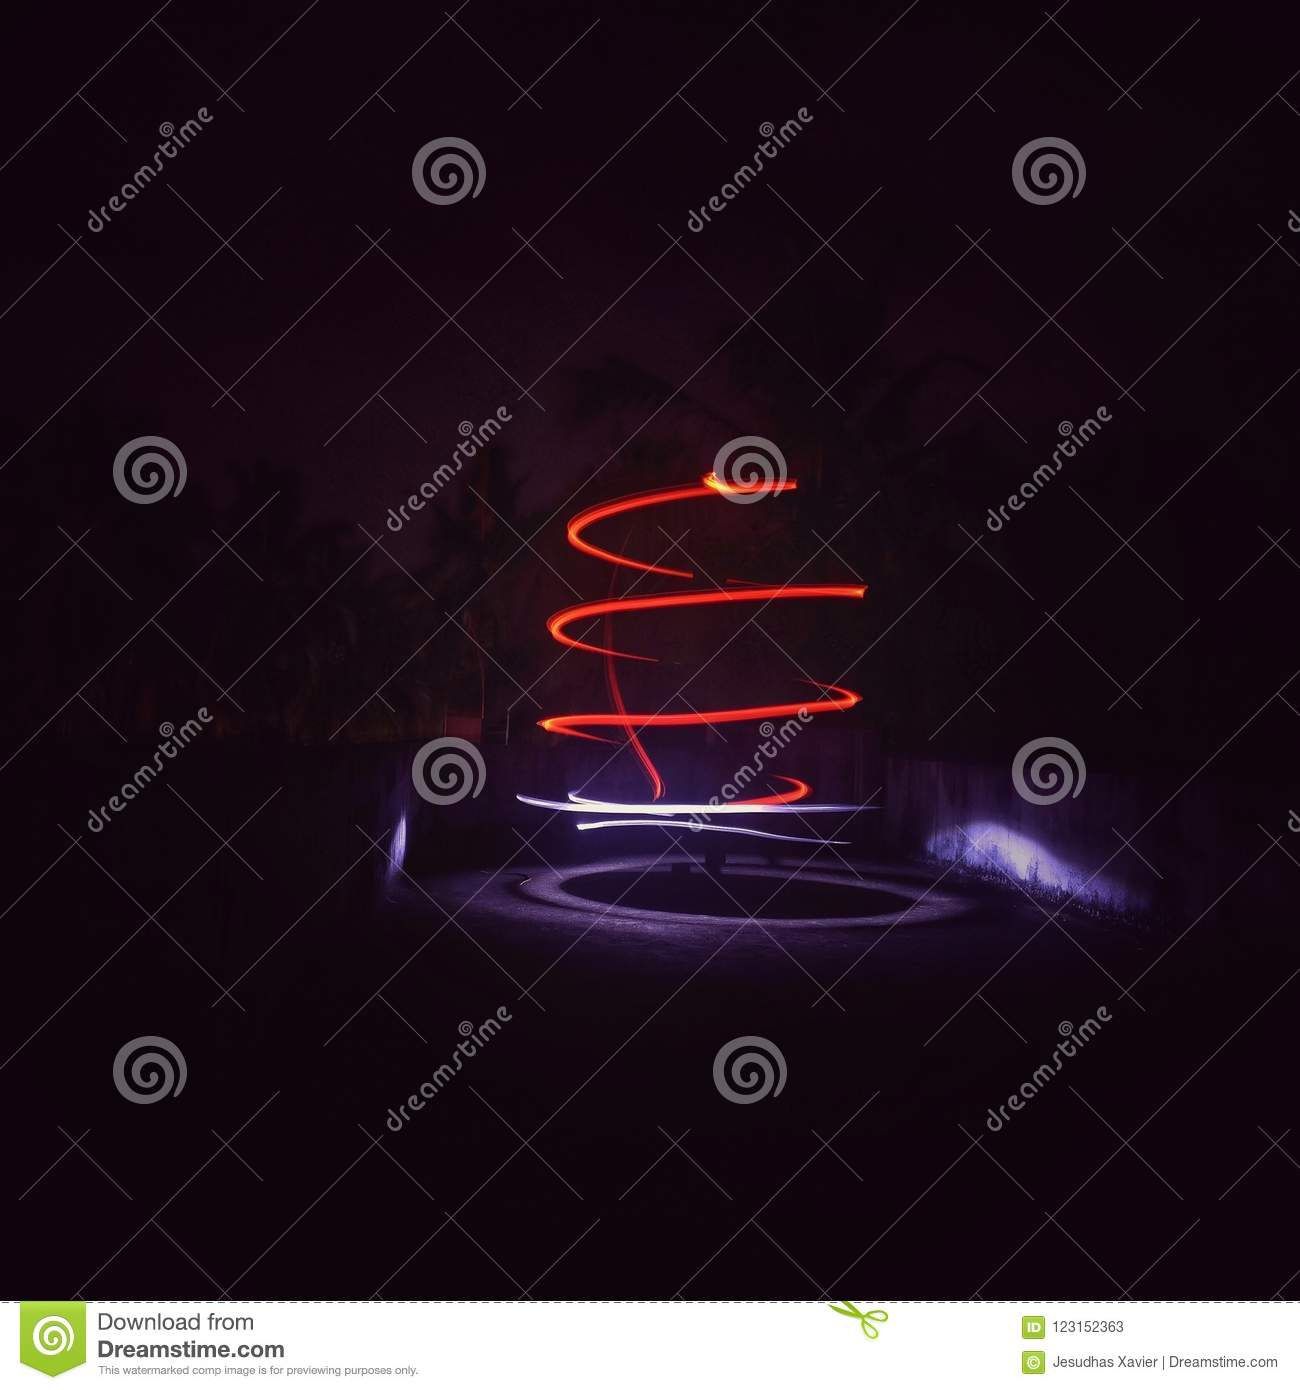 Light Painting Stock Image Image Of Snapseed Light 123152363